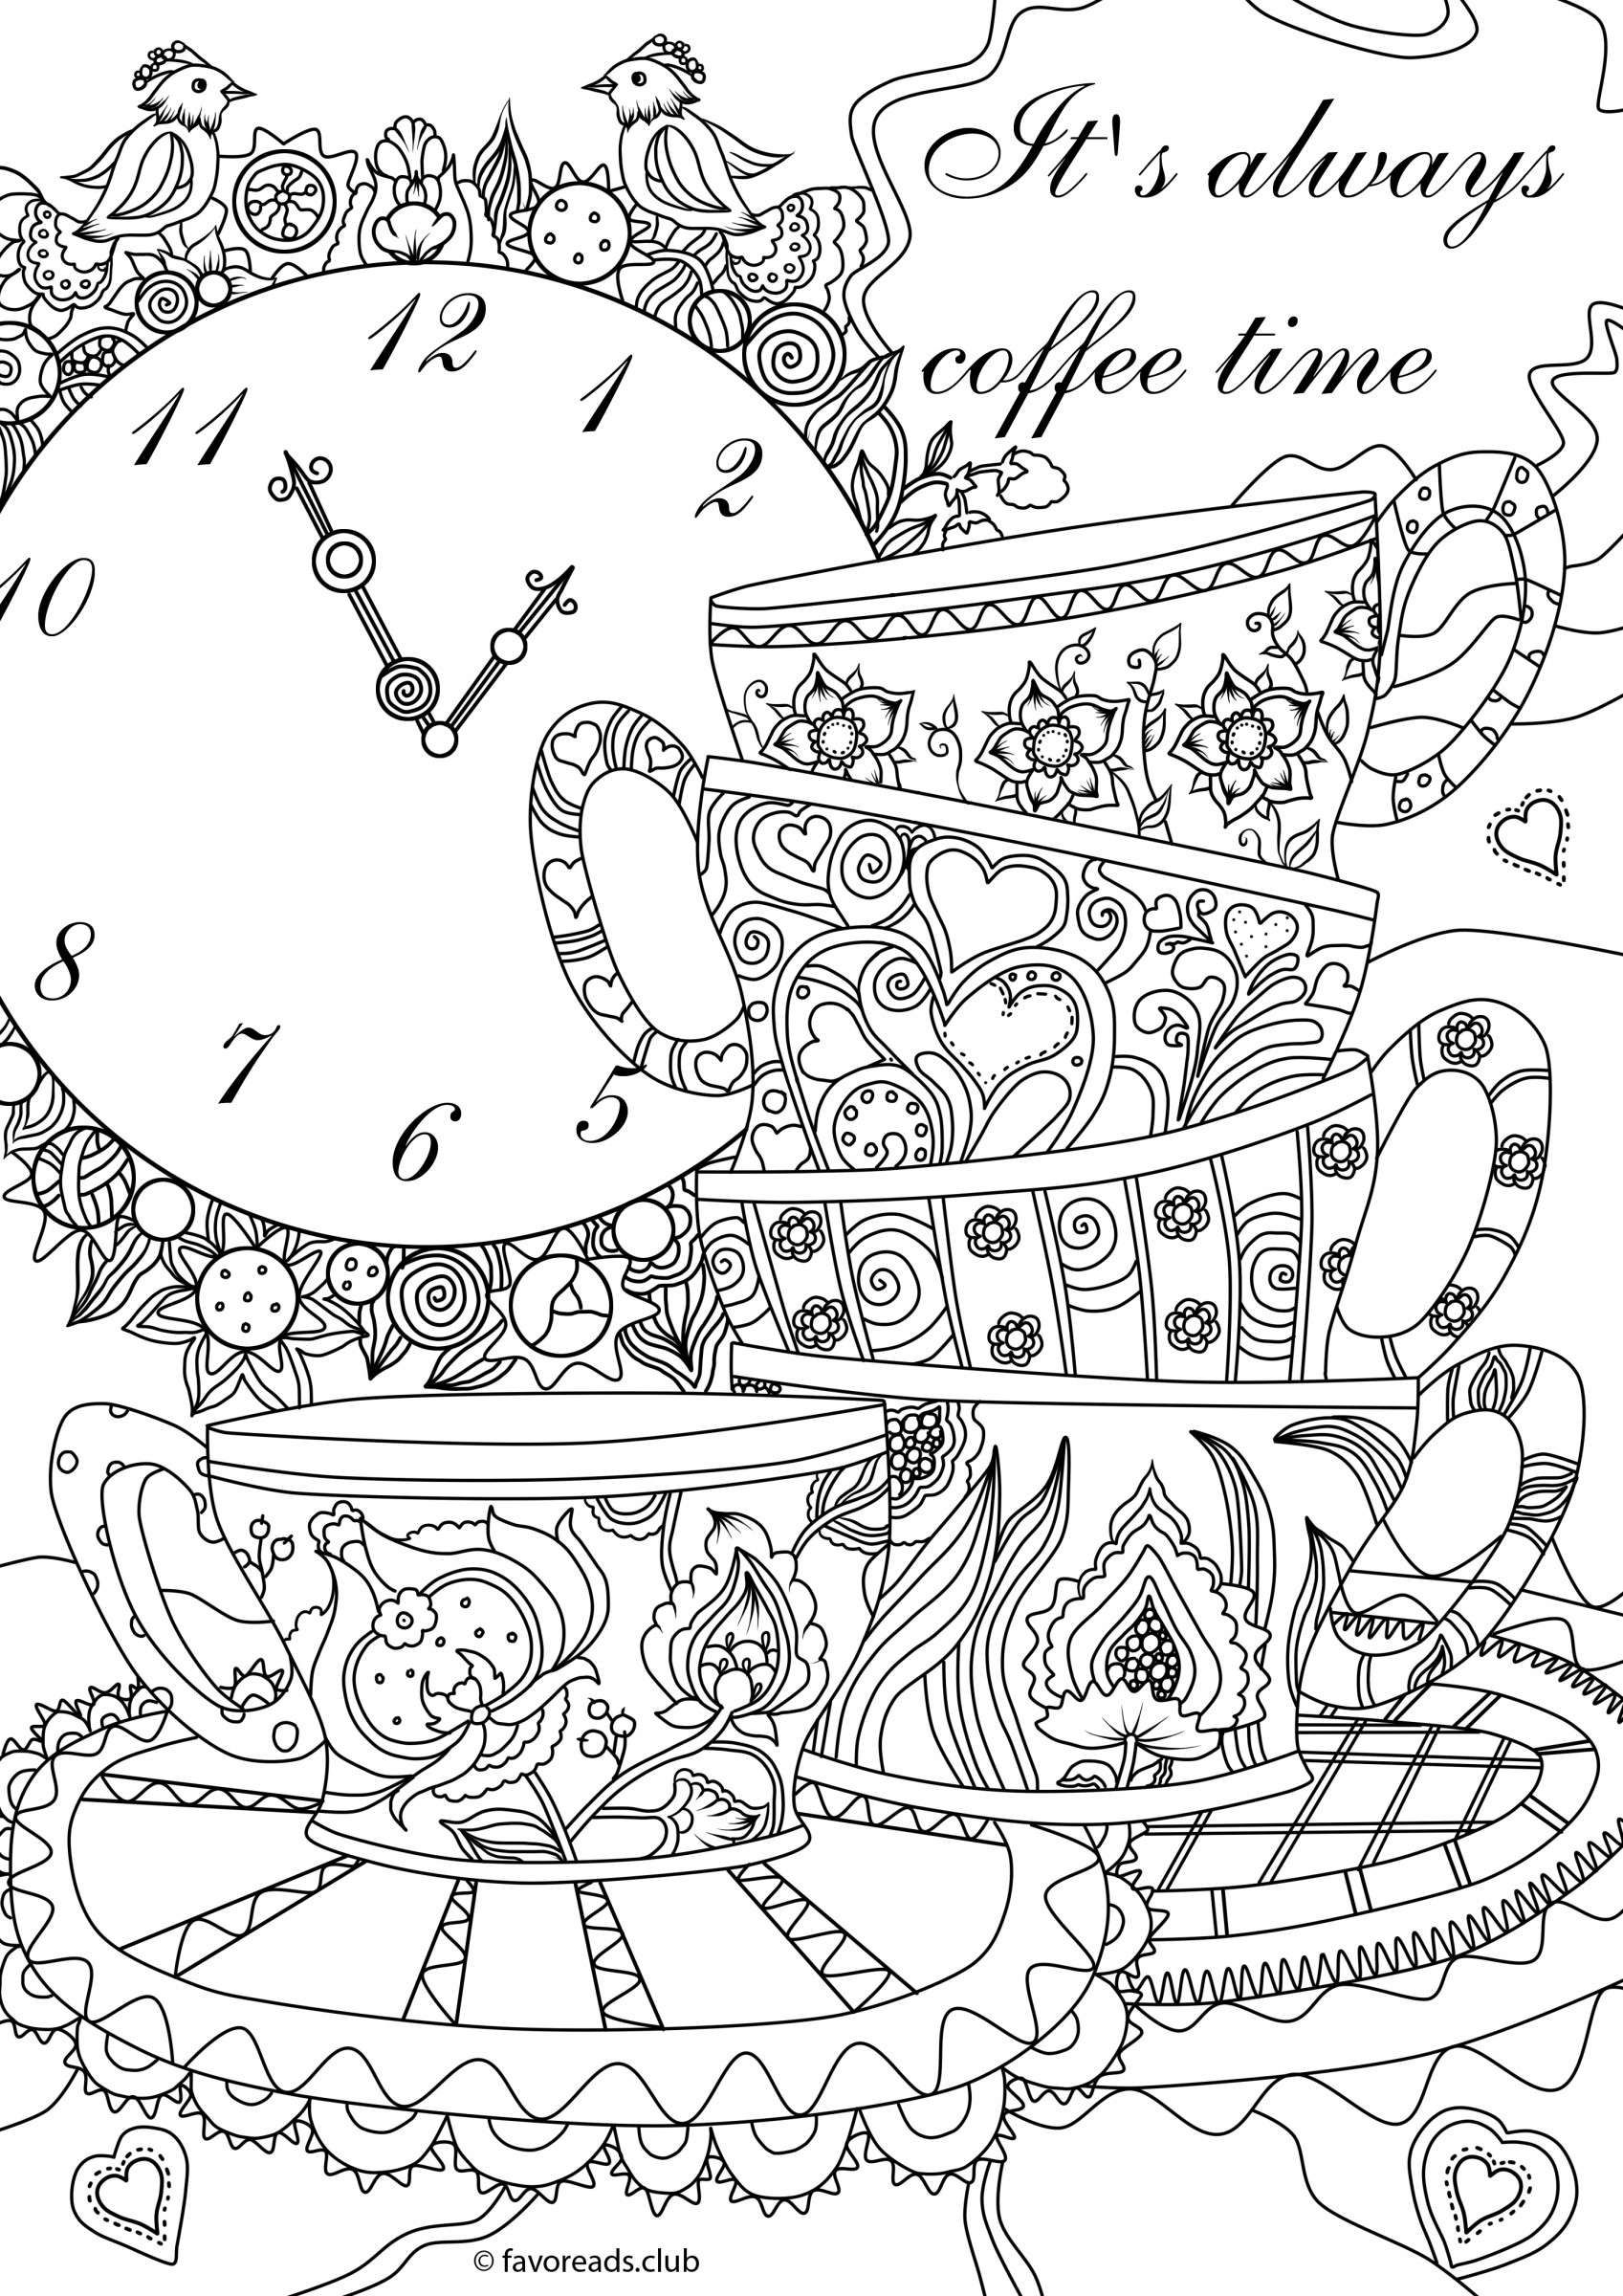 favoreads-its-always-coffee-time-f984.jpg (1697×2400)   Color Me ...